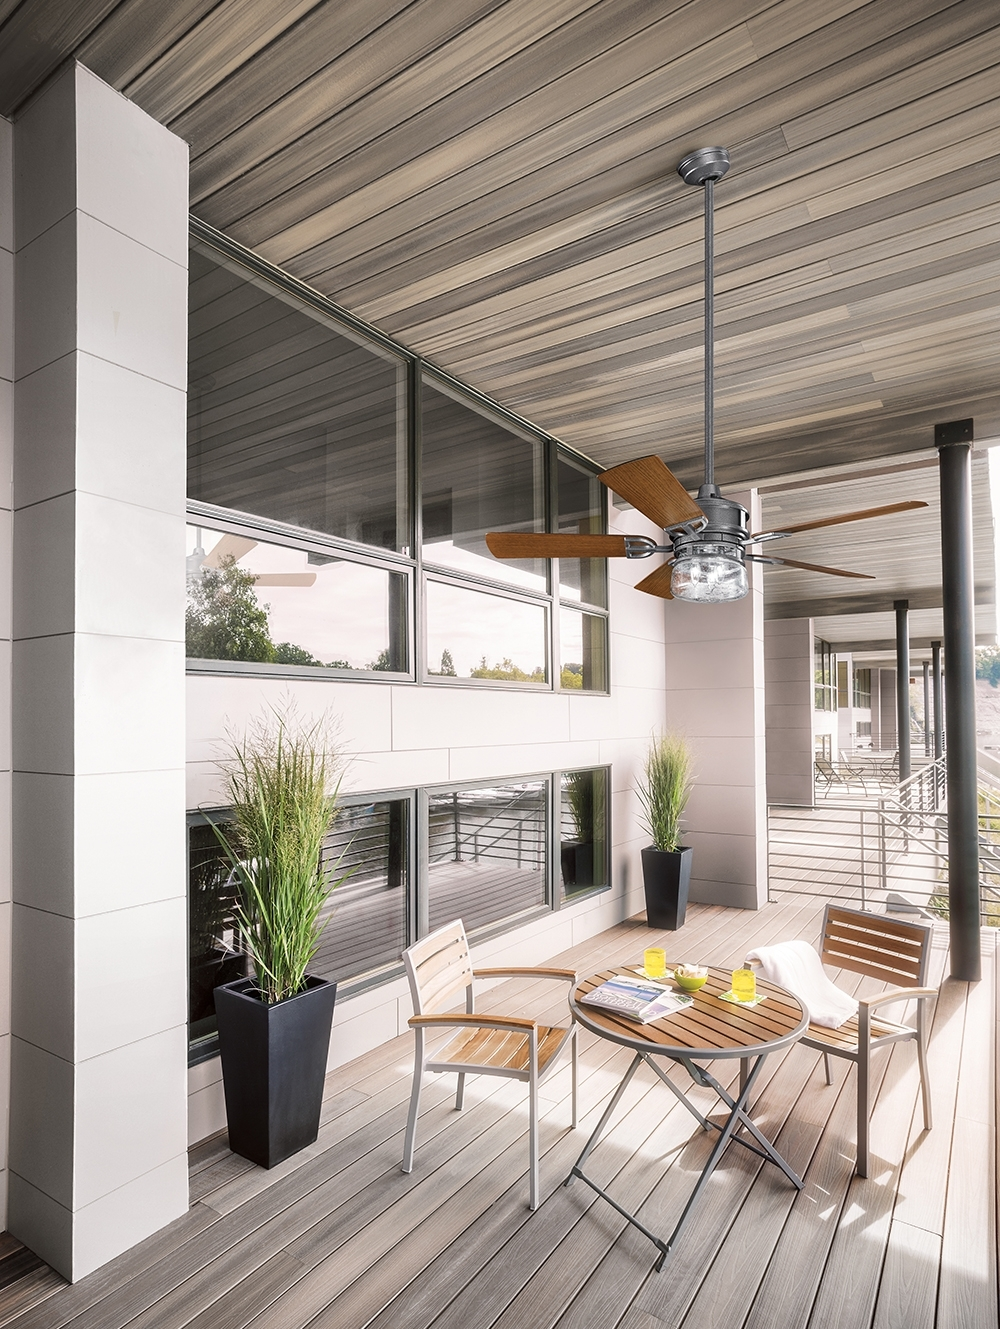 Kichler Outdoor Ceiling Fans – Photos House Interior And Fan For Fashionable Outdoor Patio Ceiling Fans With Lights (View 6 of 20)